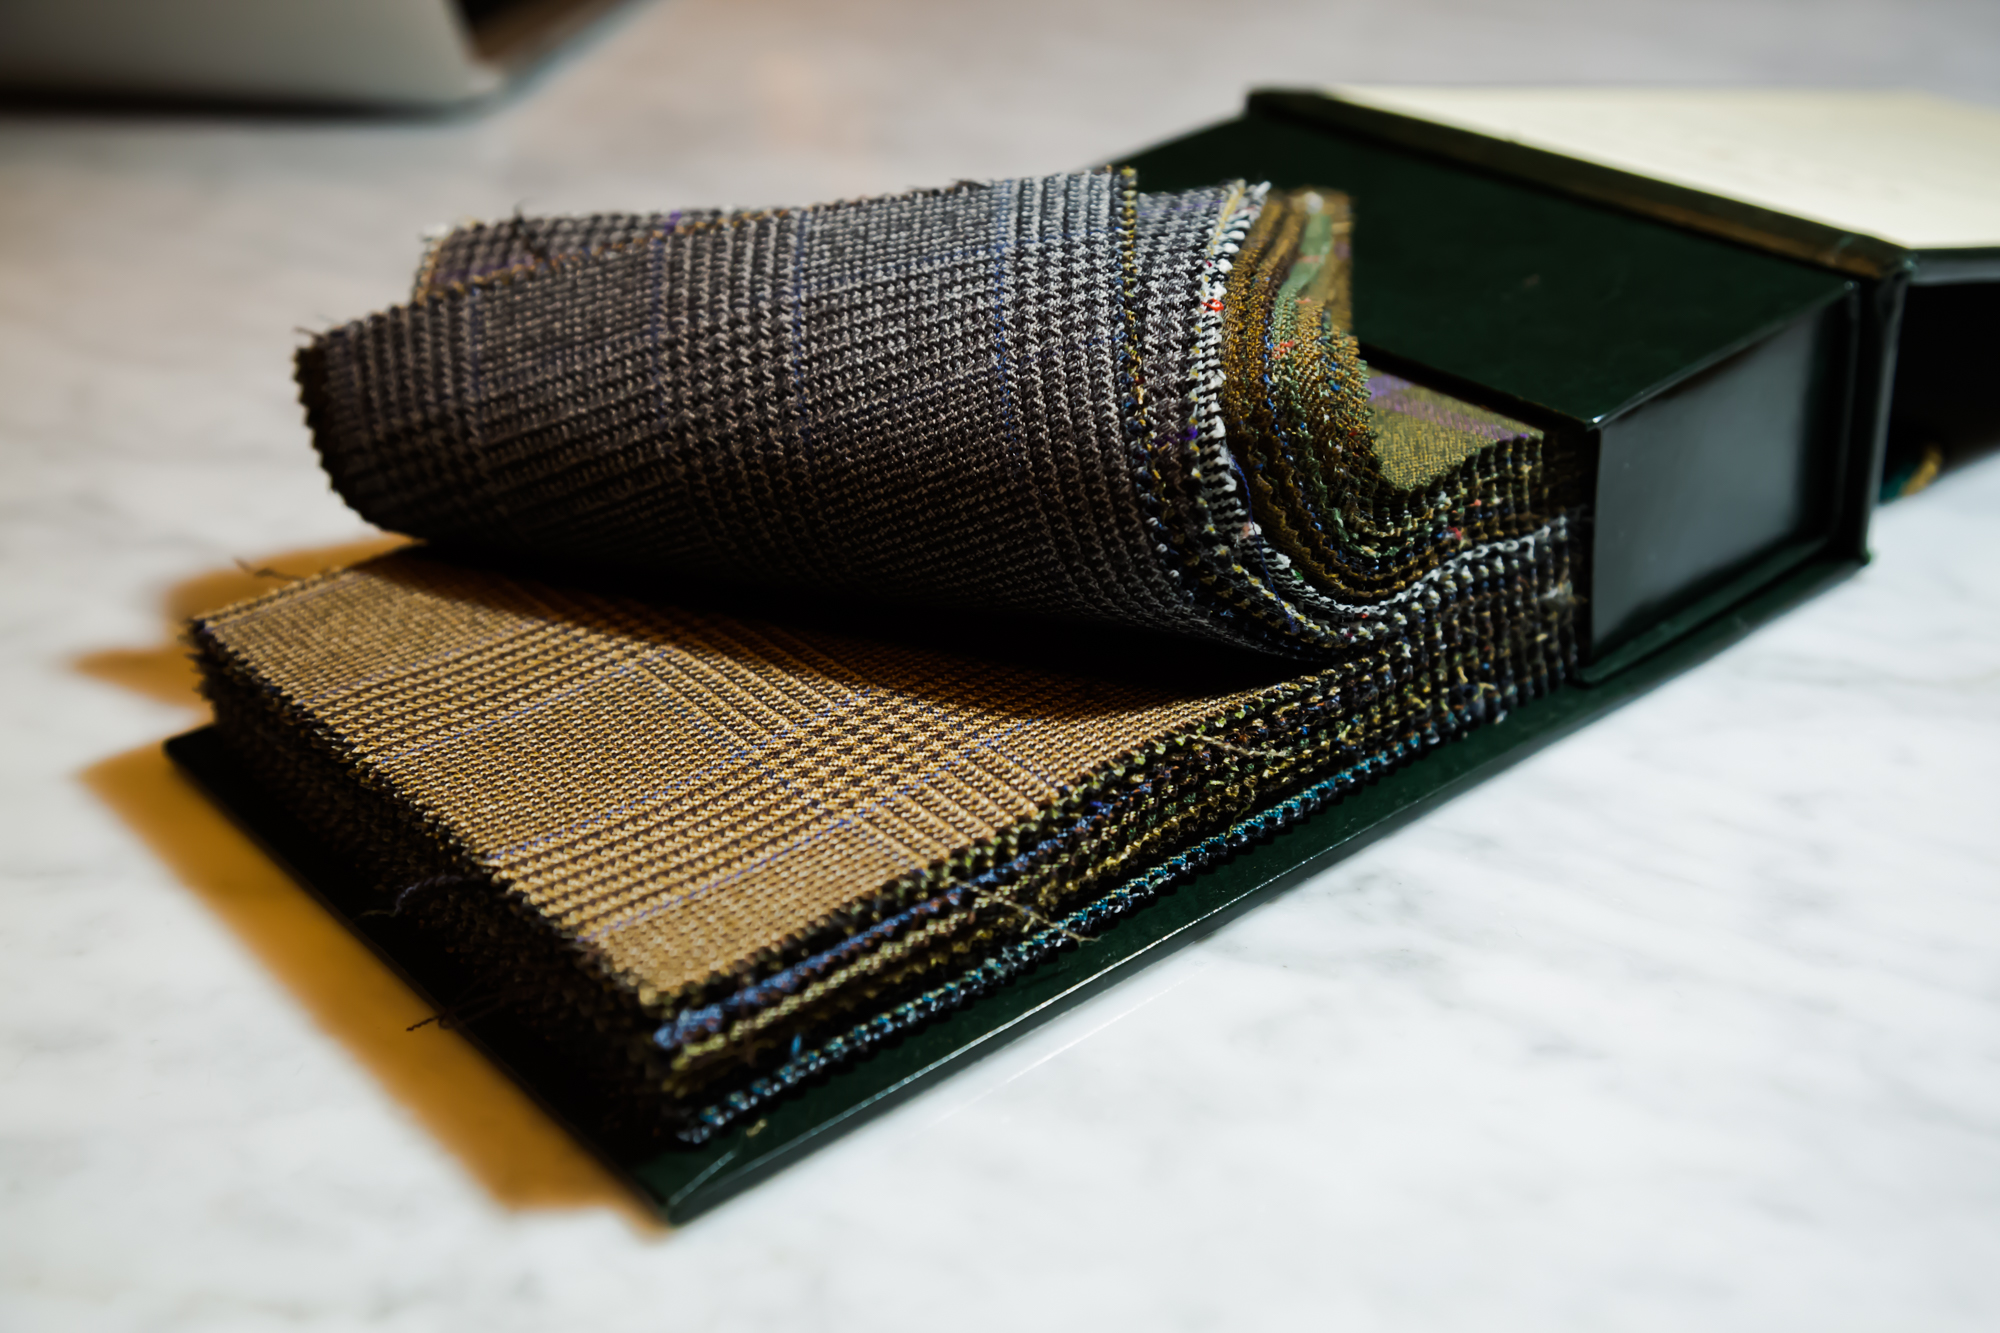 Heavy weight English fabrics designed for warmth. Anything over 300 grams should be worn only in winter.